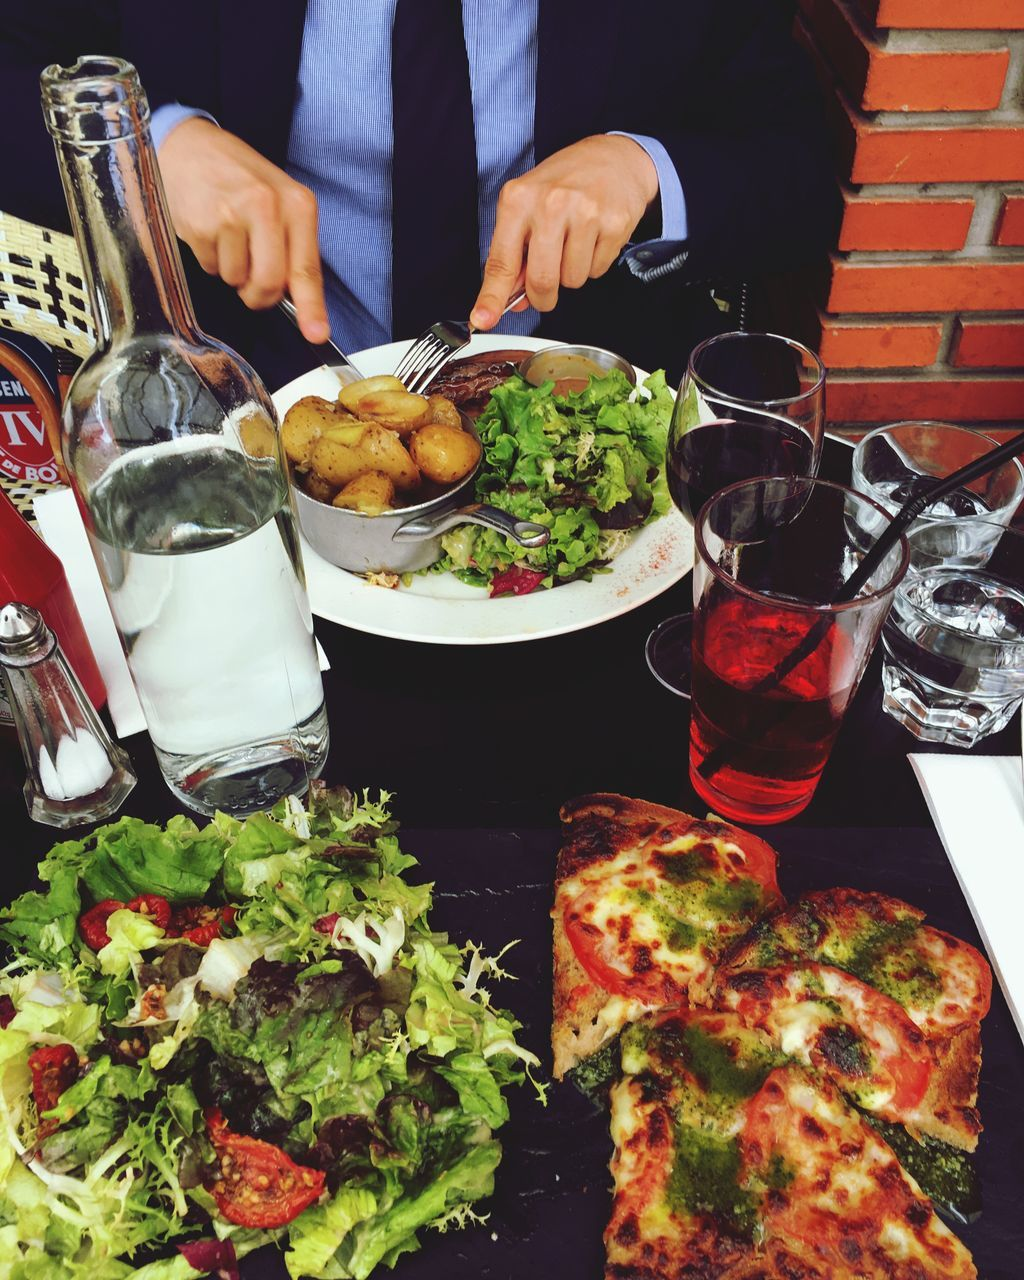 food and drink, food, real people, midsection, salad, freshness, healthy eating, plate, men, wine, table, human hand, wineglass, holding, red wine, fork, drink, meal, serving size, lifestyles, indoors, drinking glass, ready-to-eat, close-up, day, adult, people